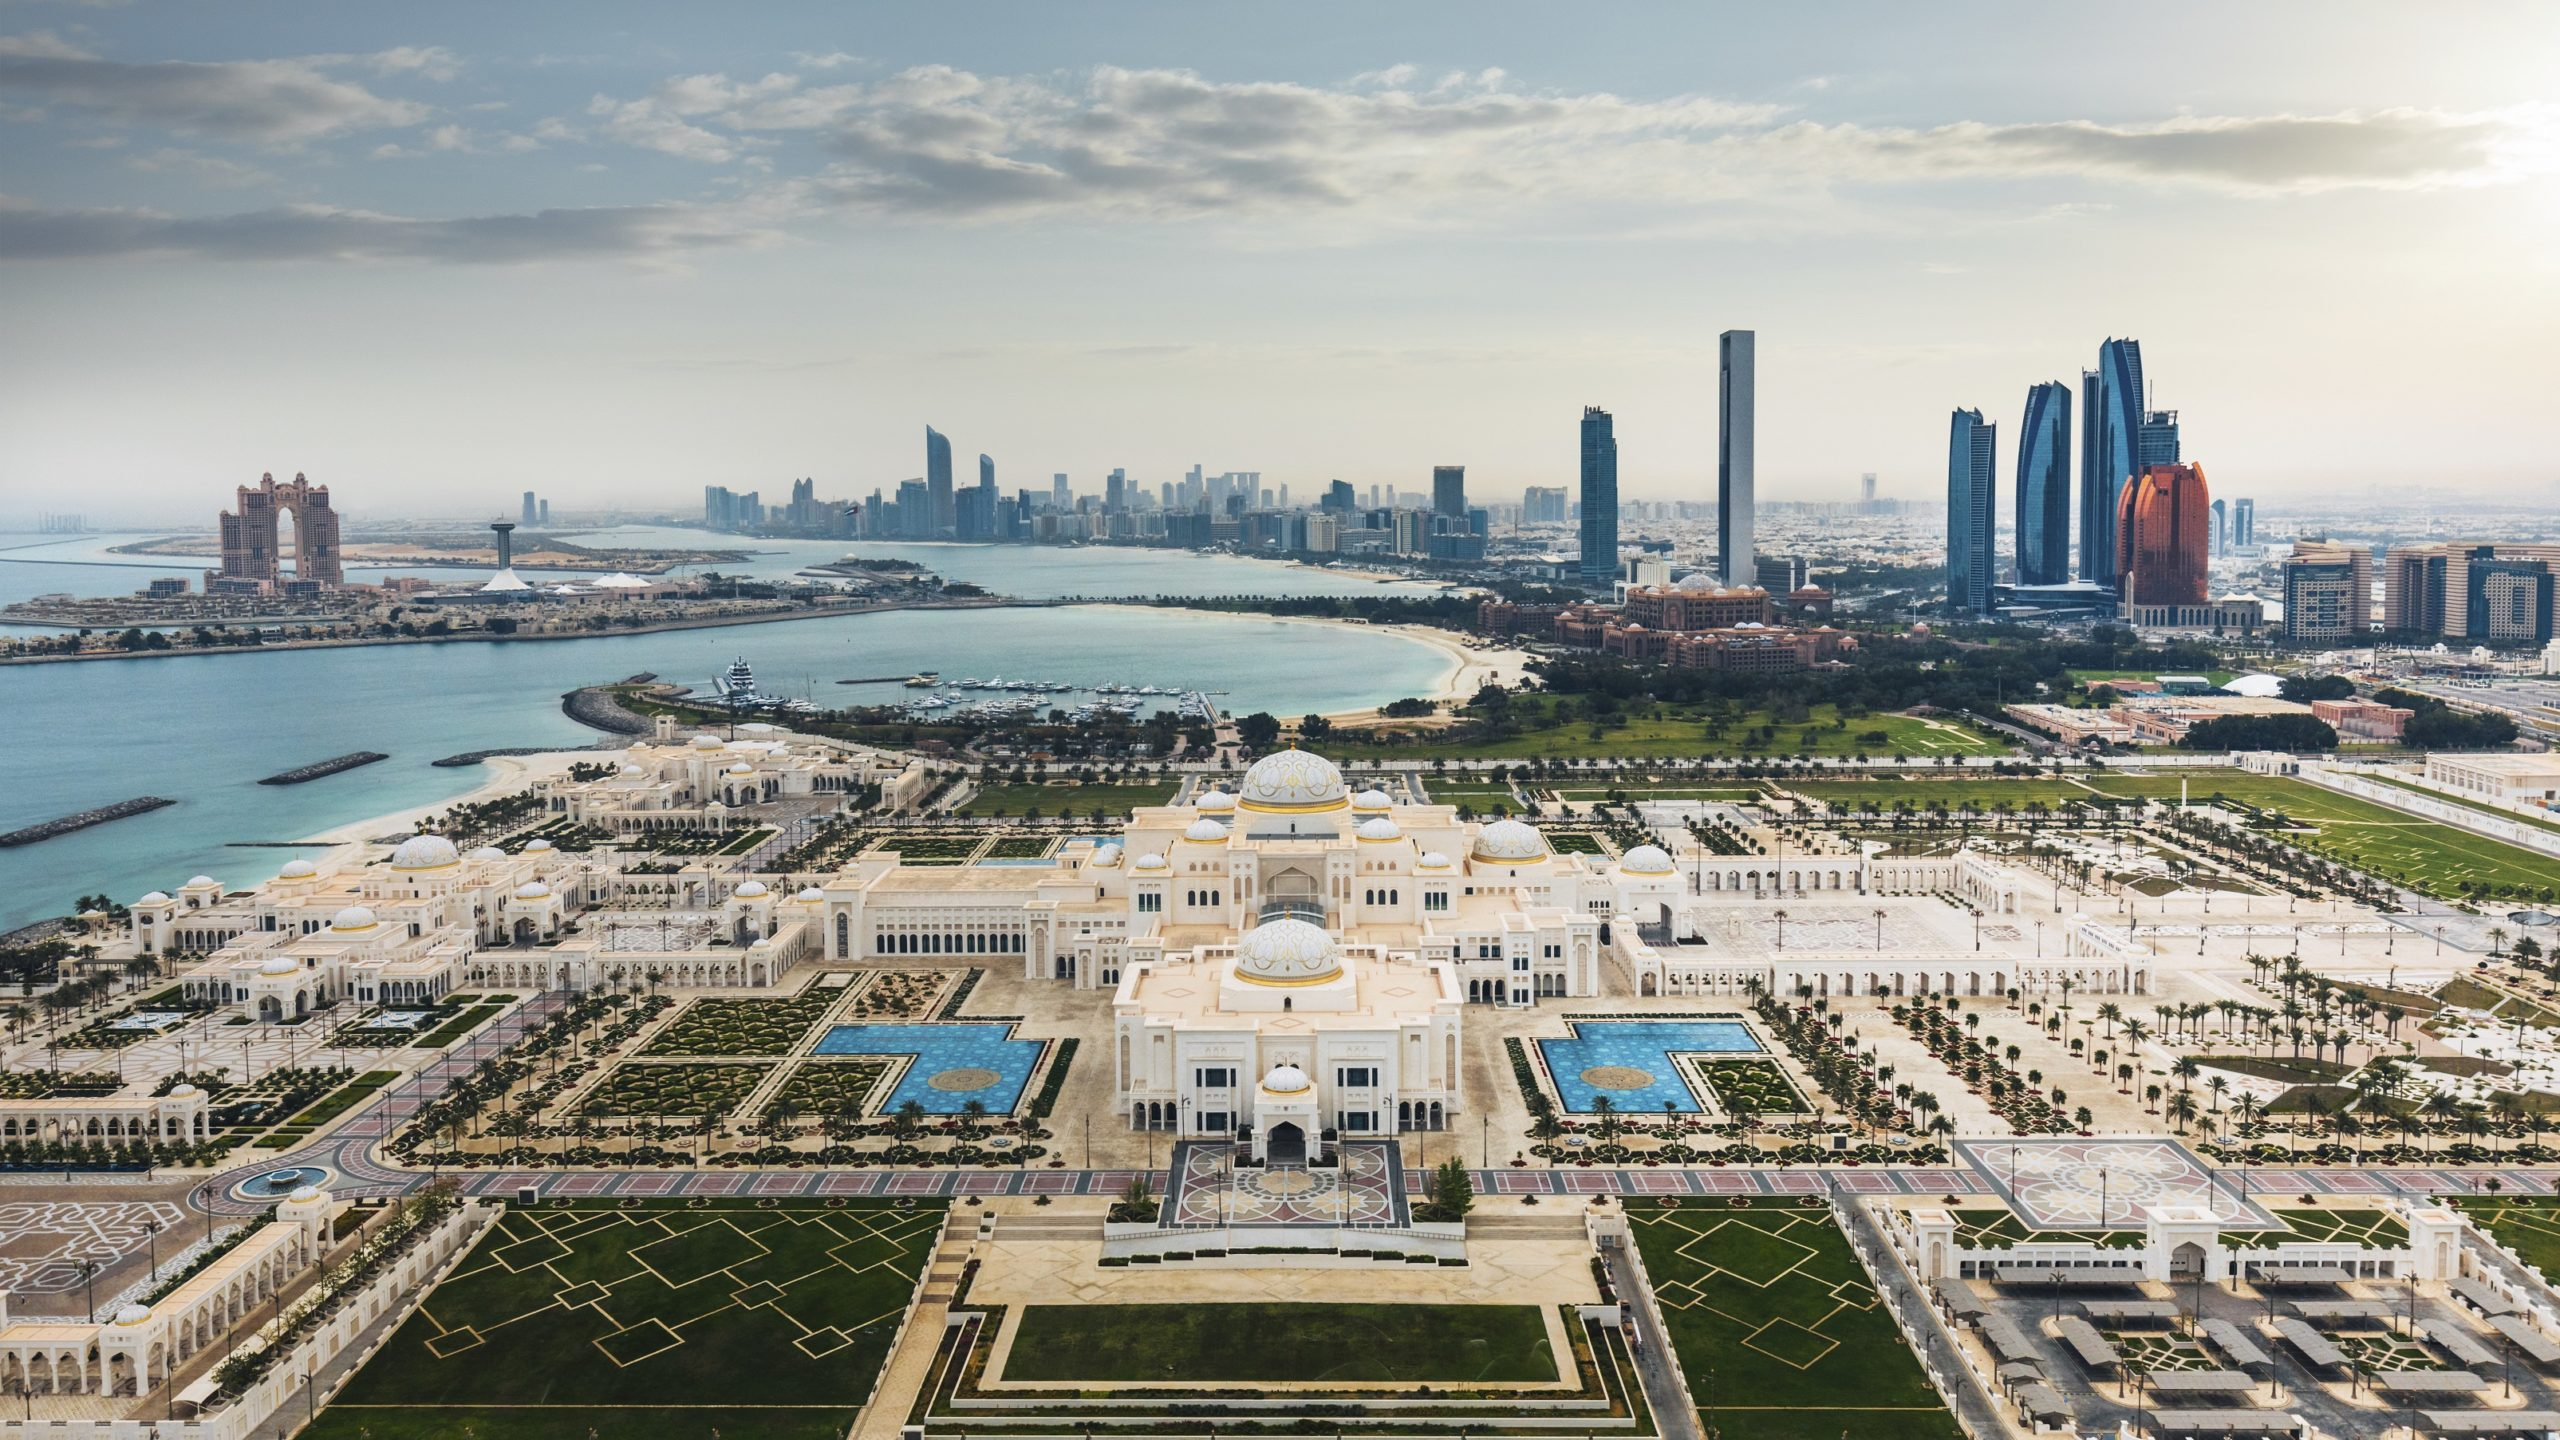 Abu Dhabi climbs international rankings as a business events destination